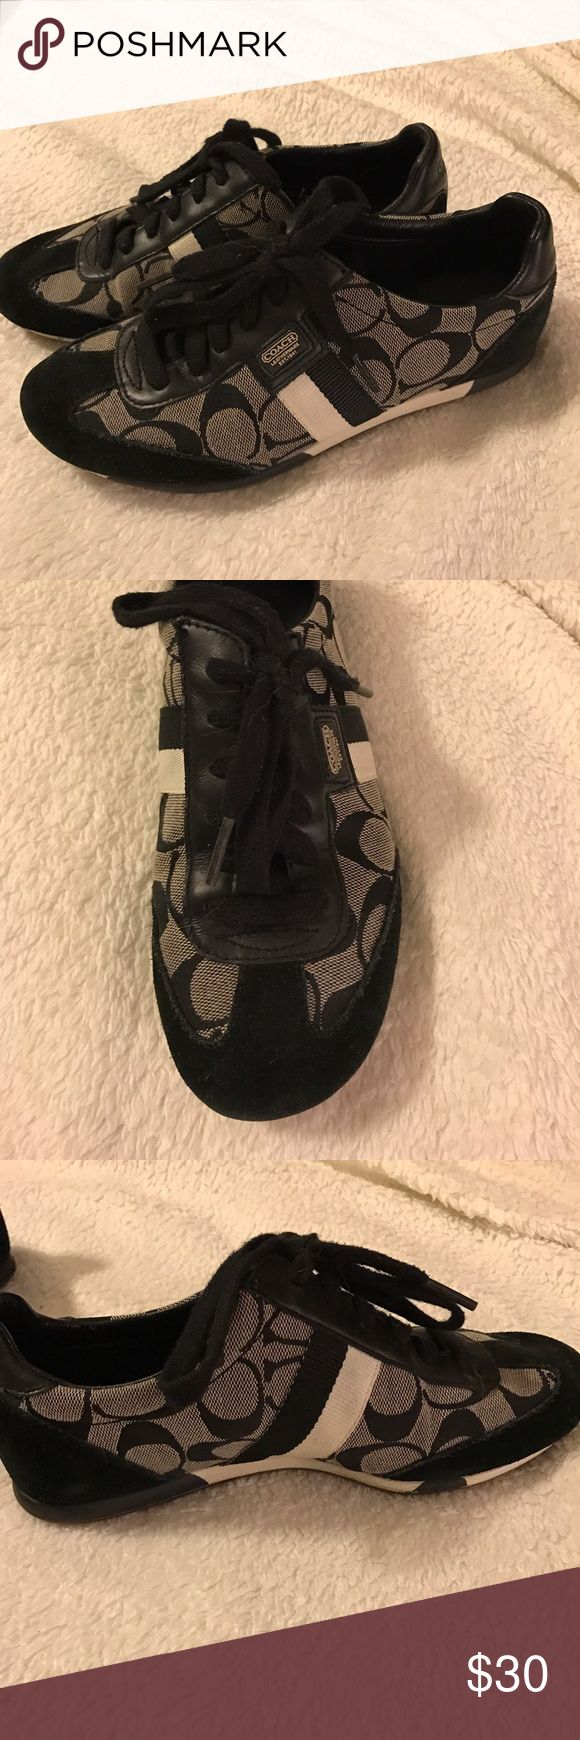 Coach tennis shoes Coach black tennis shoes with black/white stripe. Great condition!! Coach Shoes Sneakers